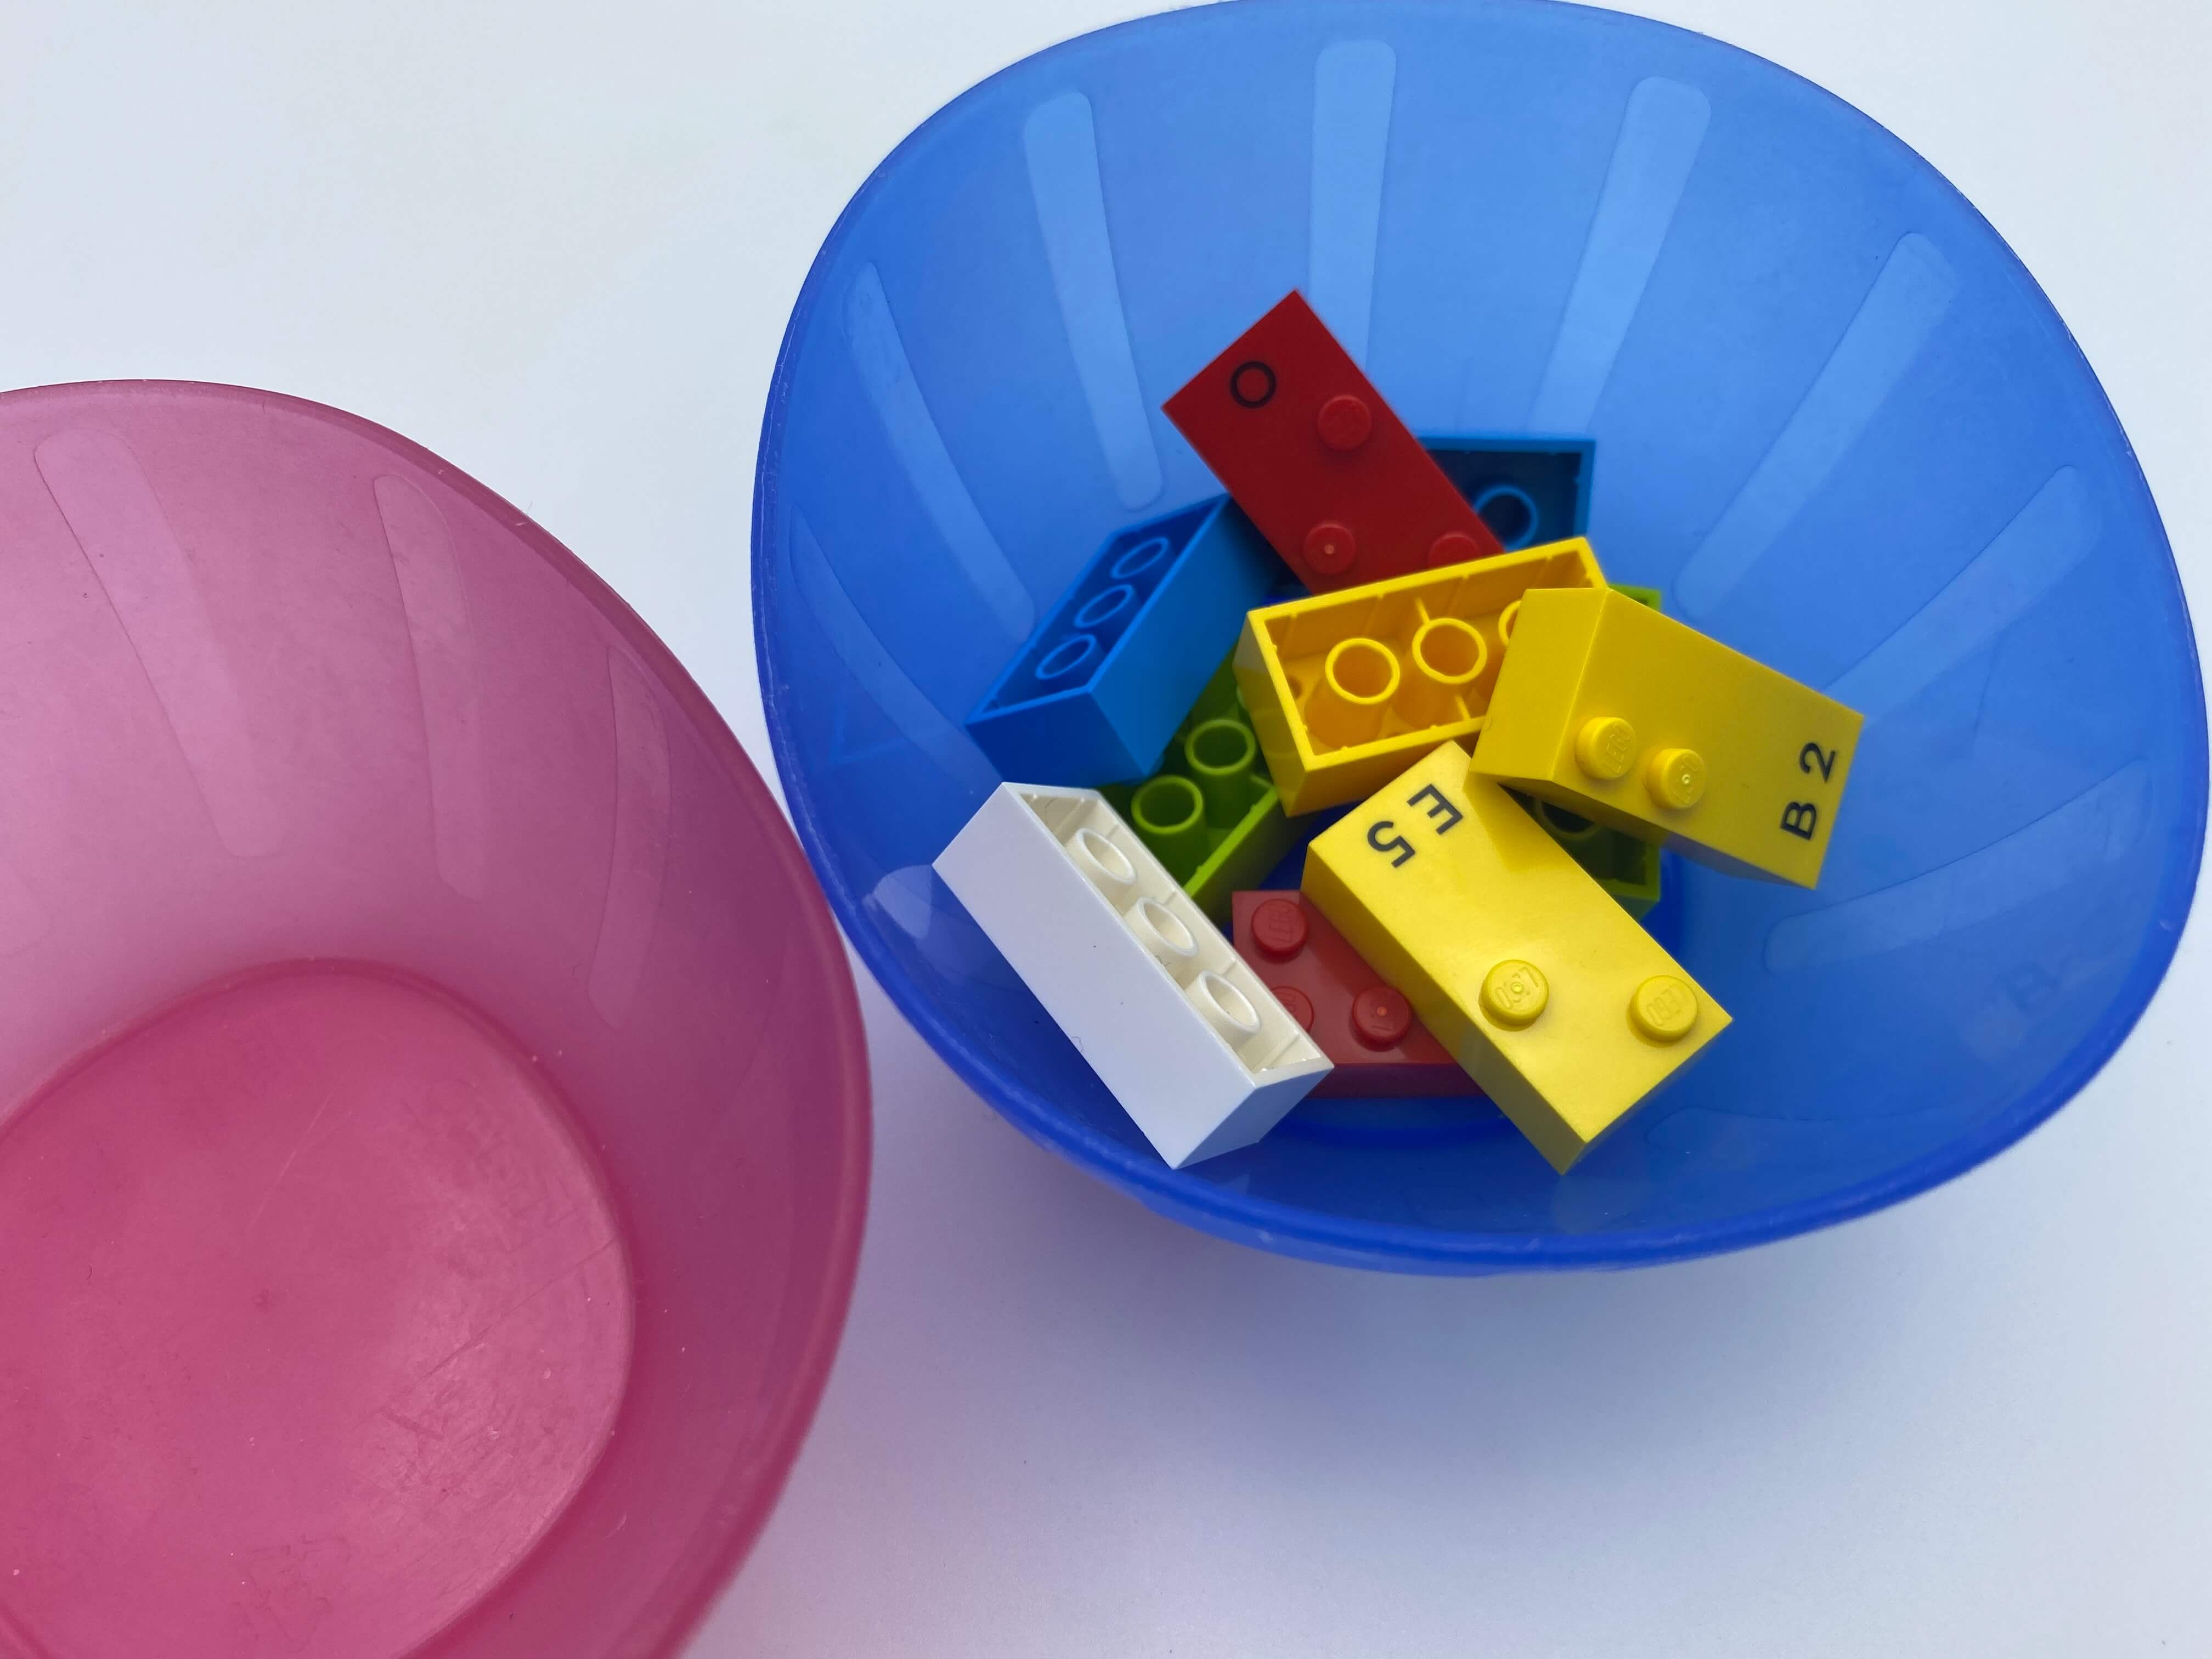 10 separated bricks in bowl 2, bowl 1 empty.